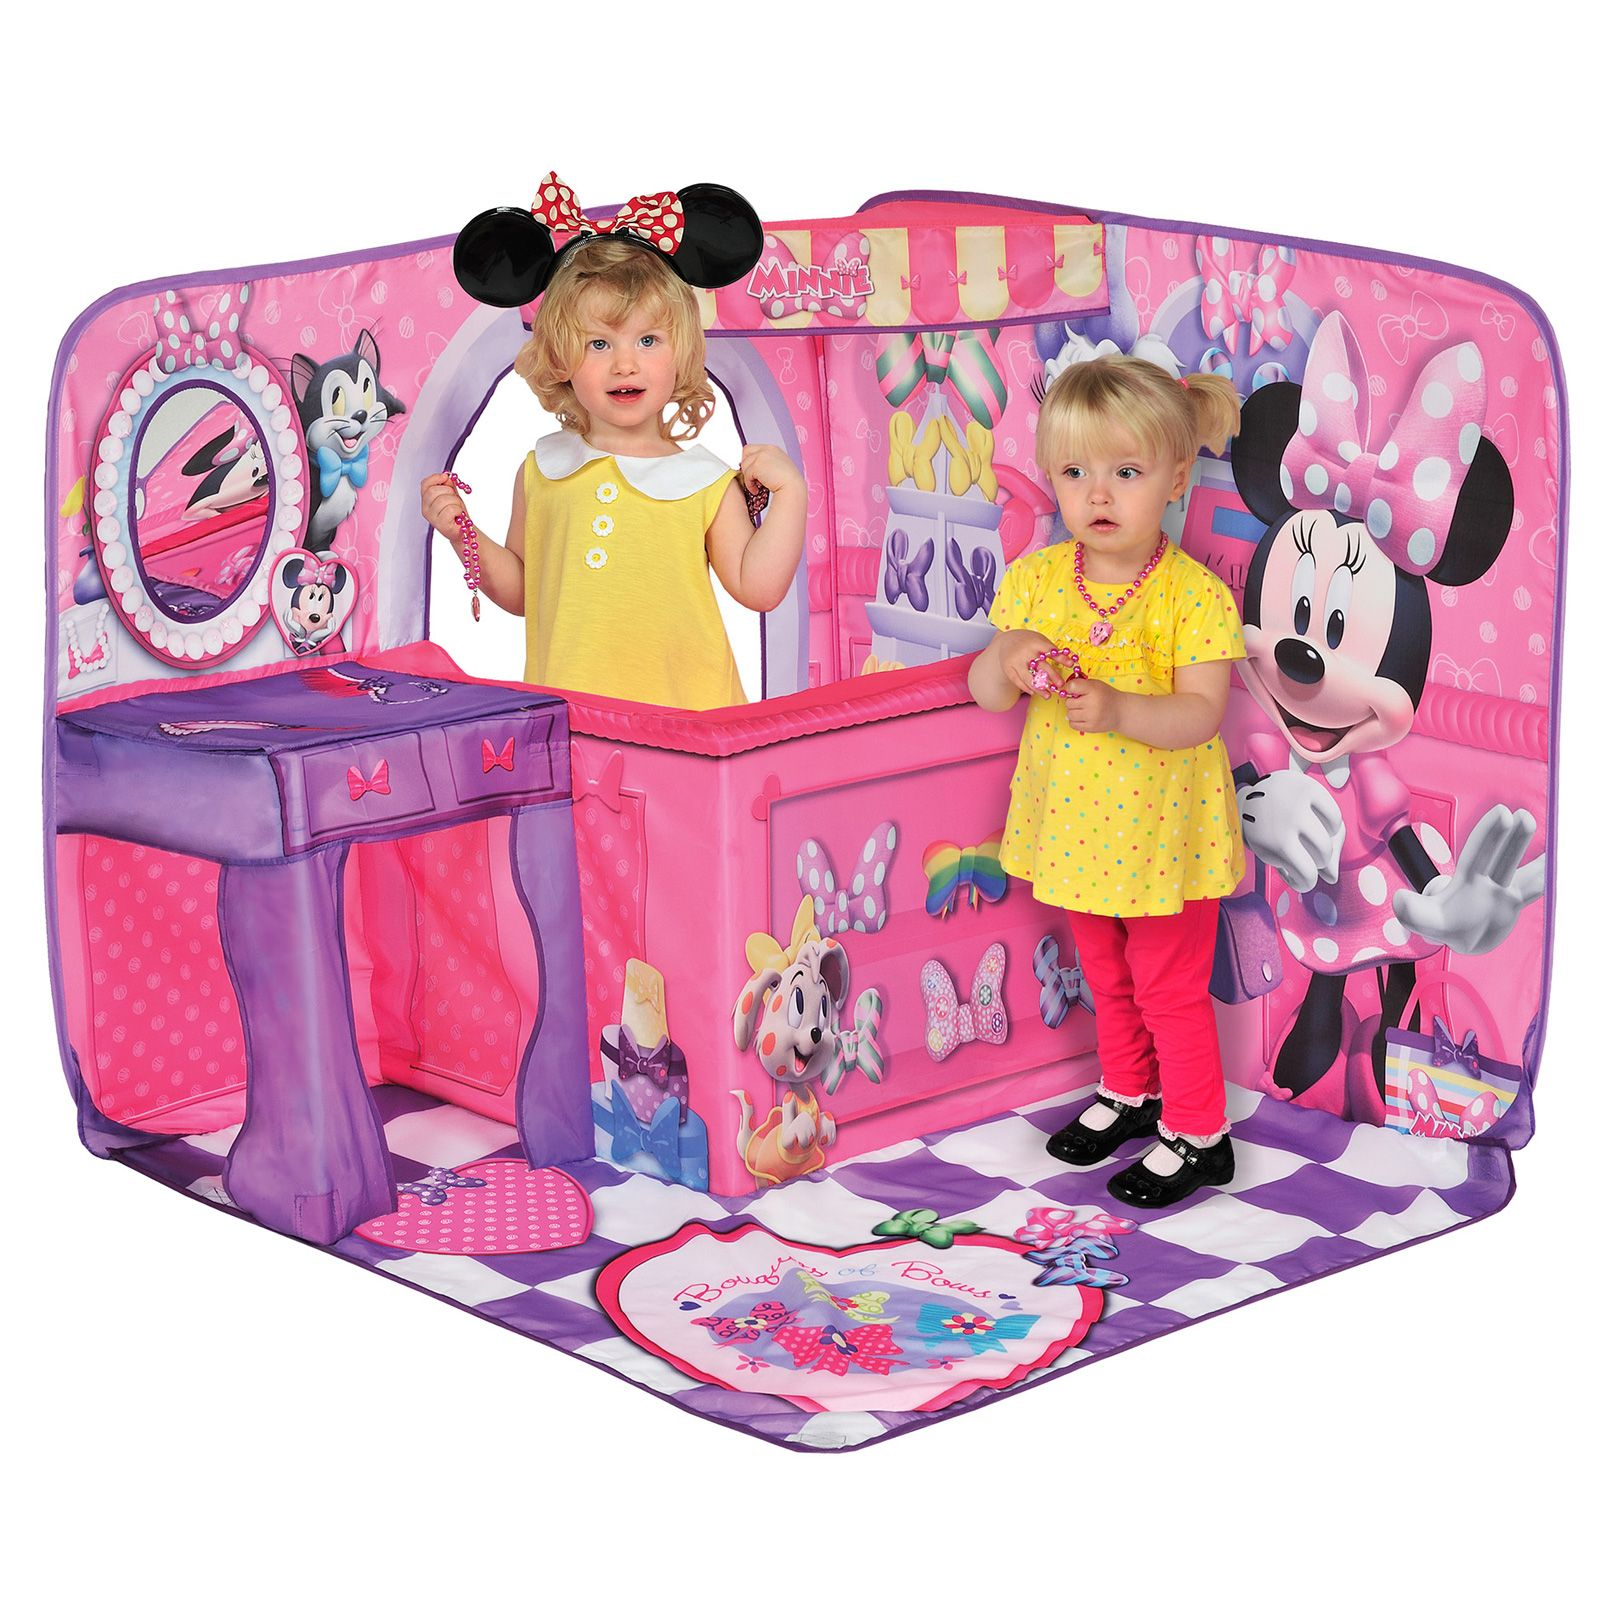 Minnie Mouse Bow Tique 3d Playscape Play House New Free P